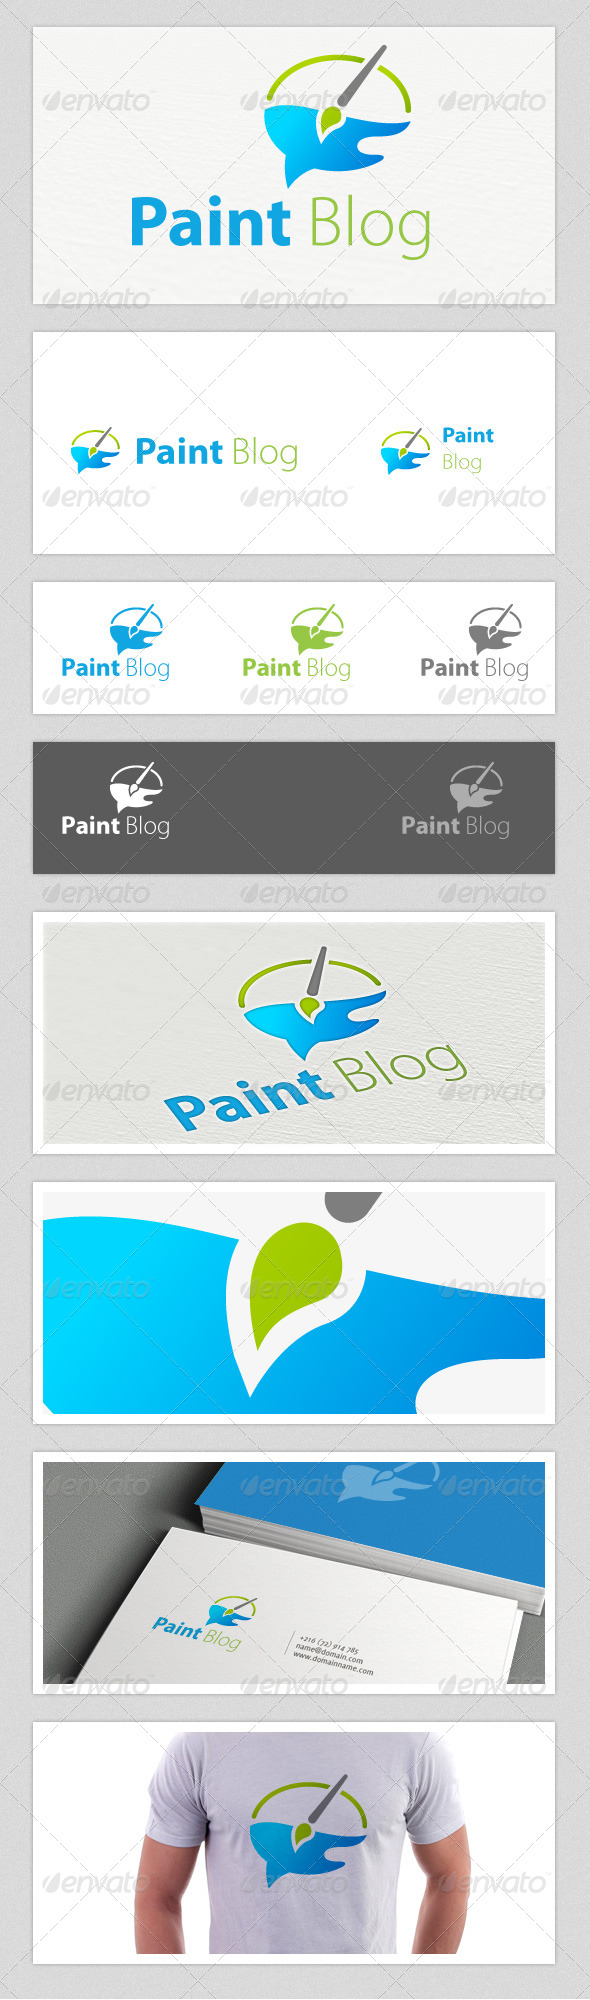 Paint Blog Logo - Abstract Logo Templates